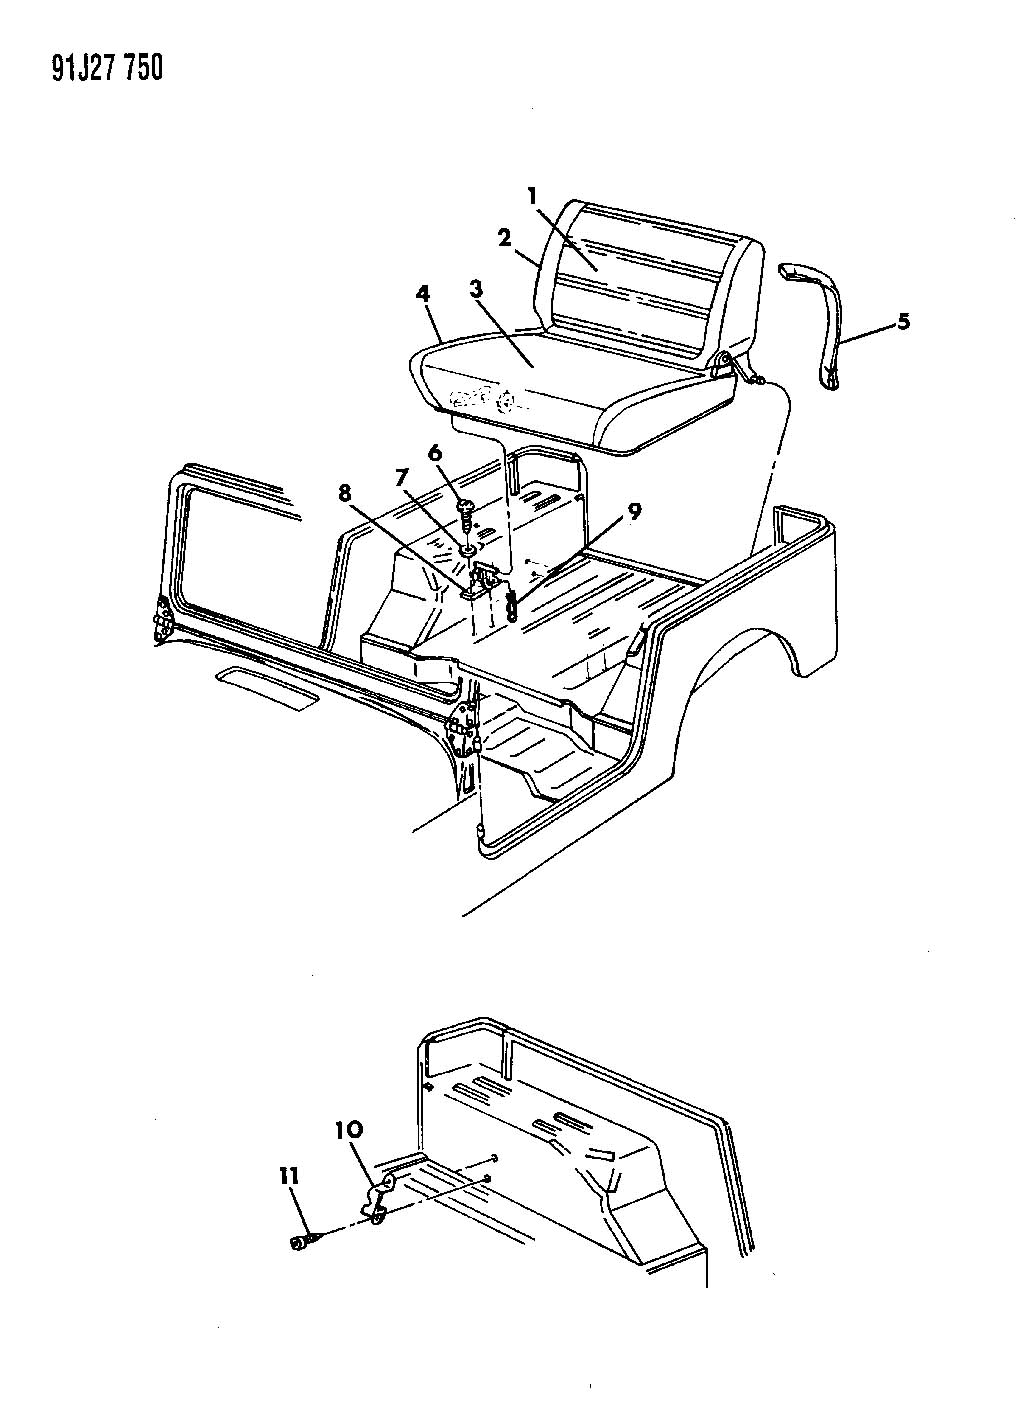 91 jeep yj front axle diagram jeep wiring diagrams instructions 1997 Chrysler Sebring jeep tj front end parts diagram wiring diagrams instructions jeep wrangler tj passenger seat parts